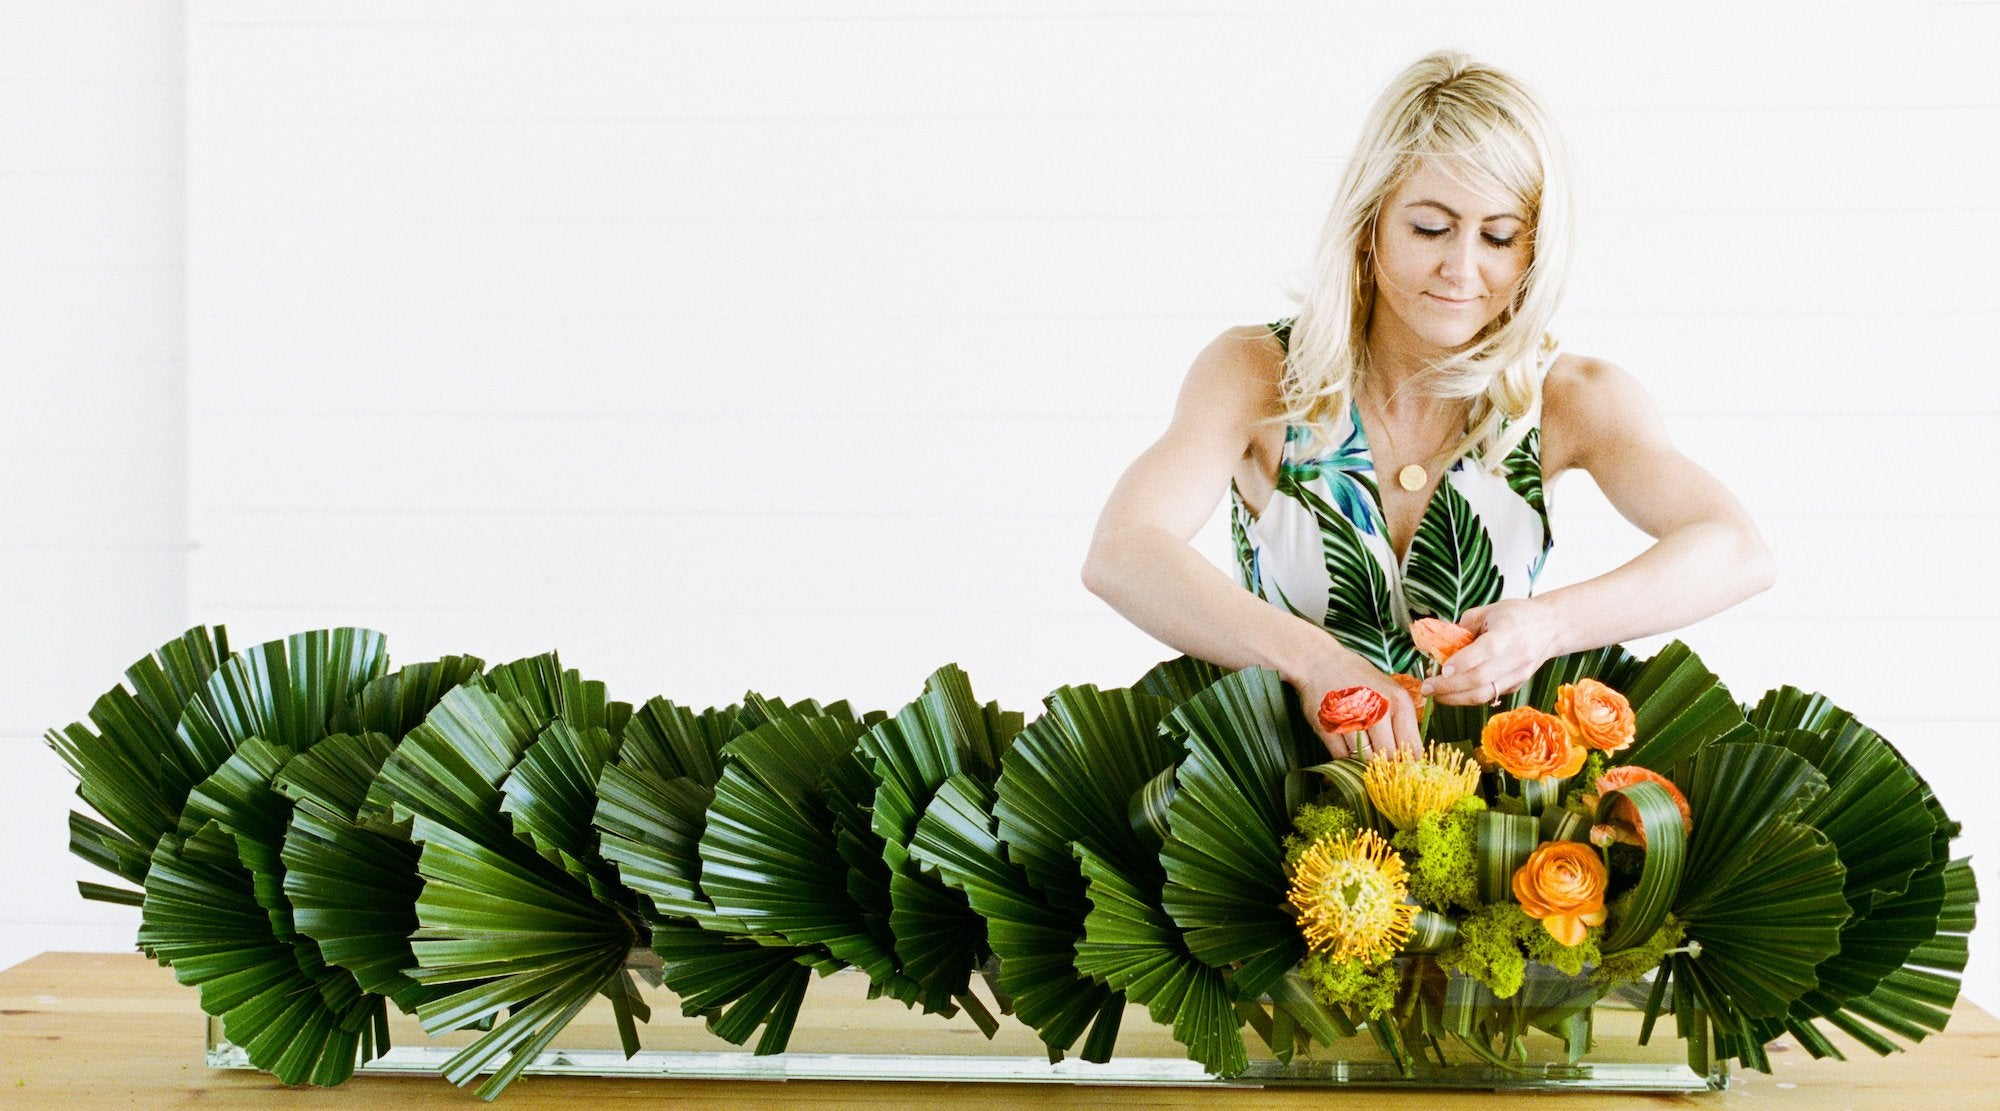 Floral Arranging as Art & Therapy